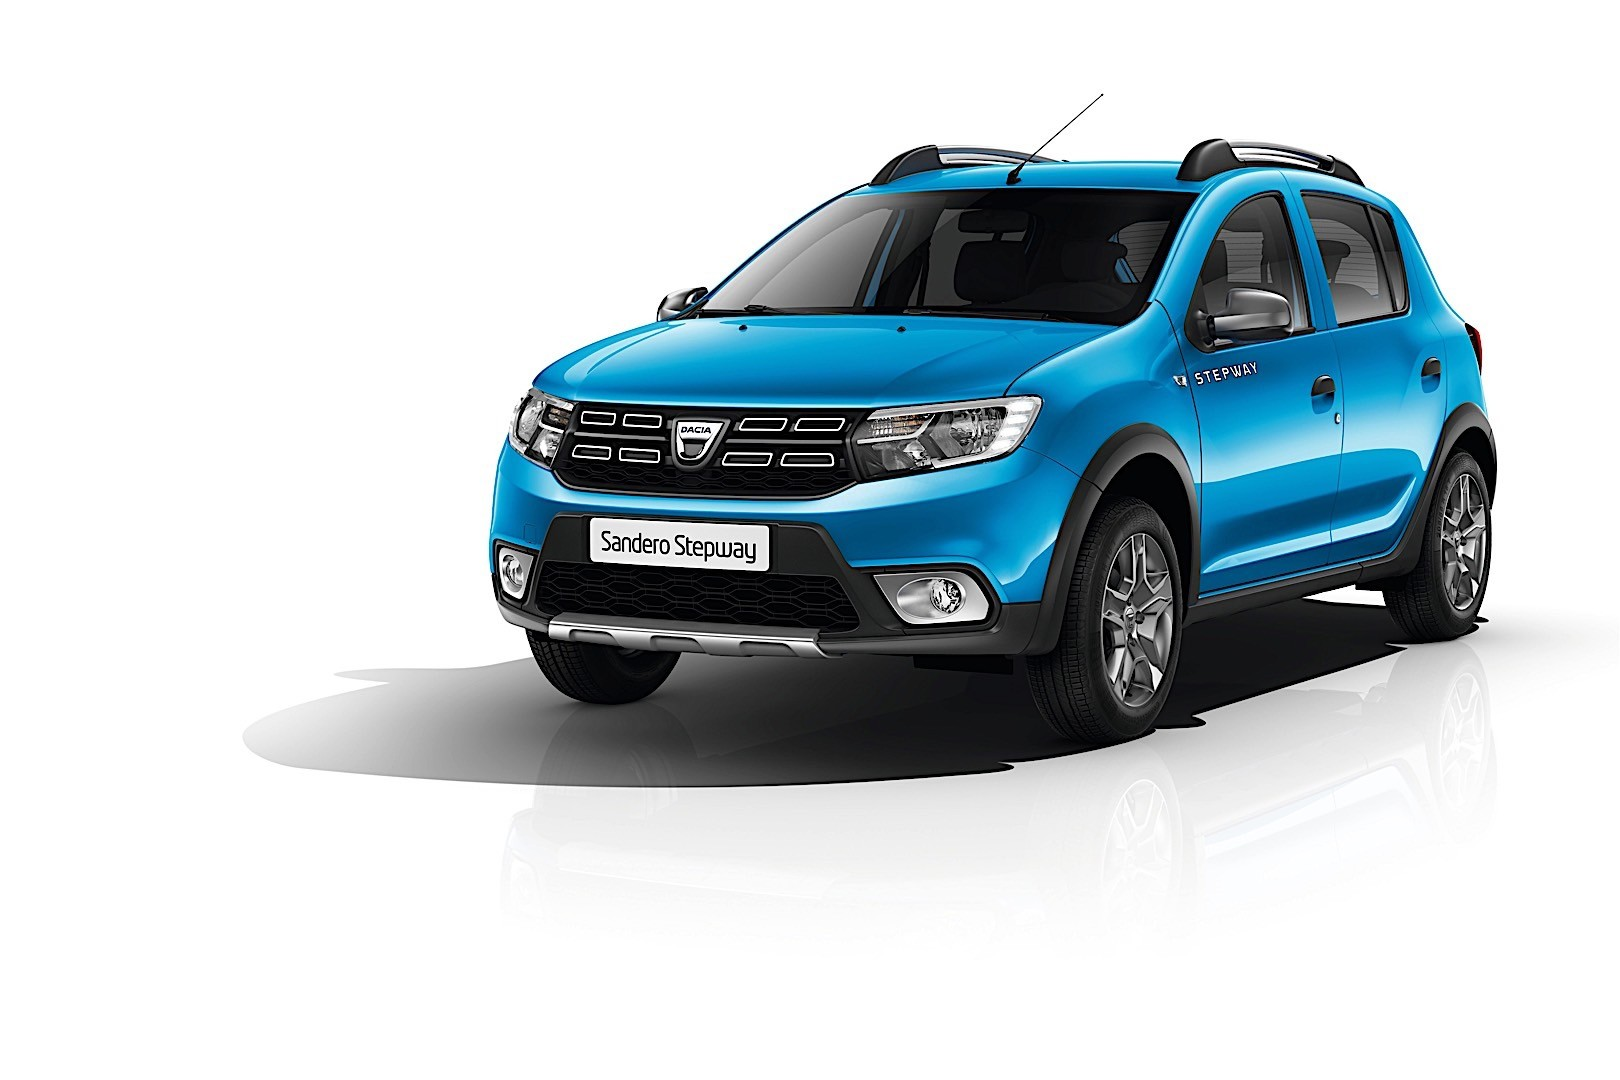 dacia sandero stepway specs 2016 2017 2018 autoevolution. Black Bedroom Furniture Sets. Home Design Ideas